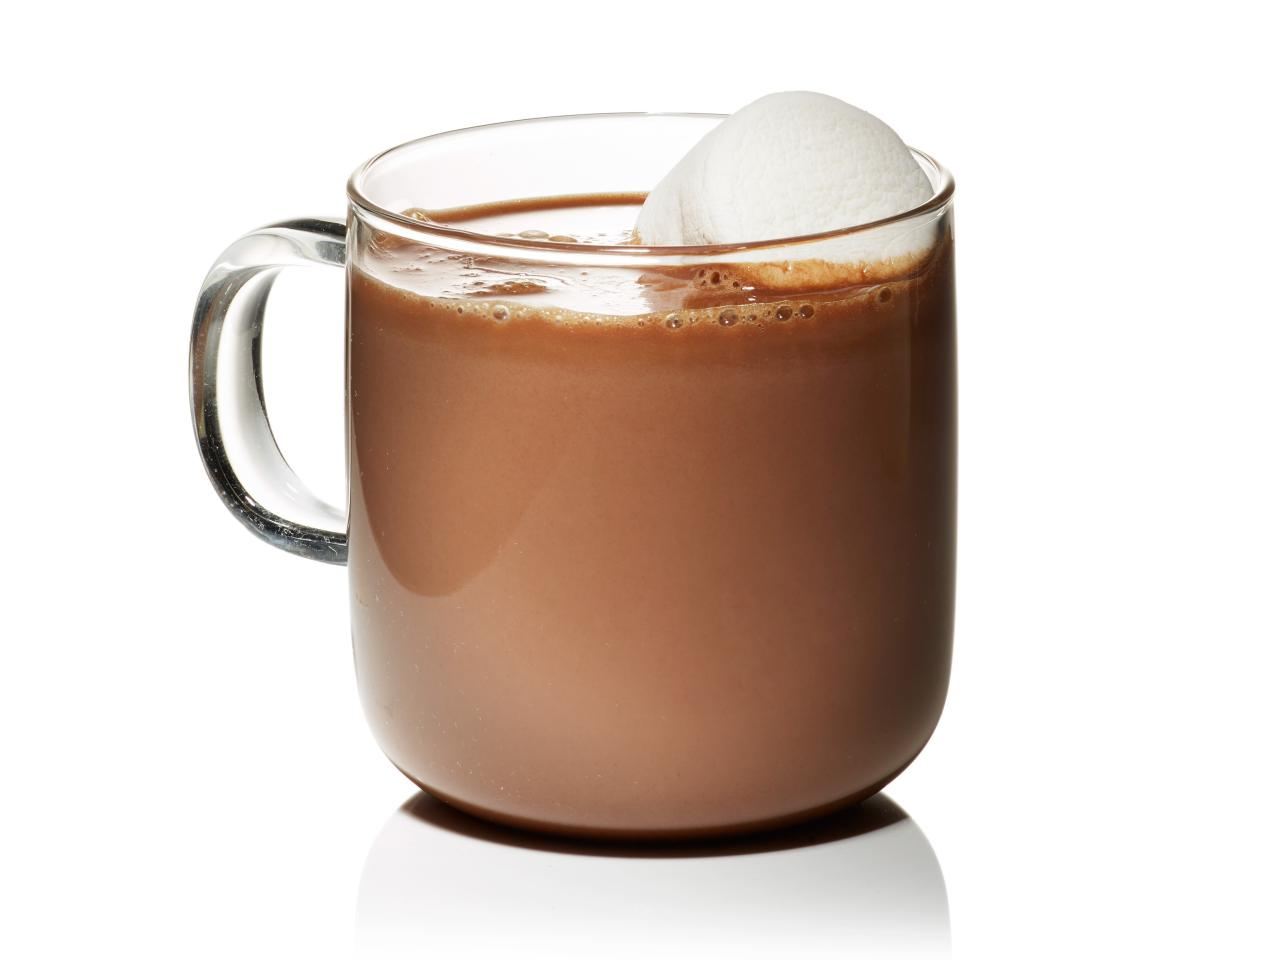 1280x960 > Hot Chocolate Wallpapers